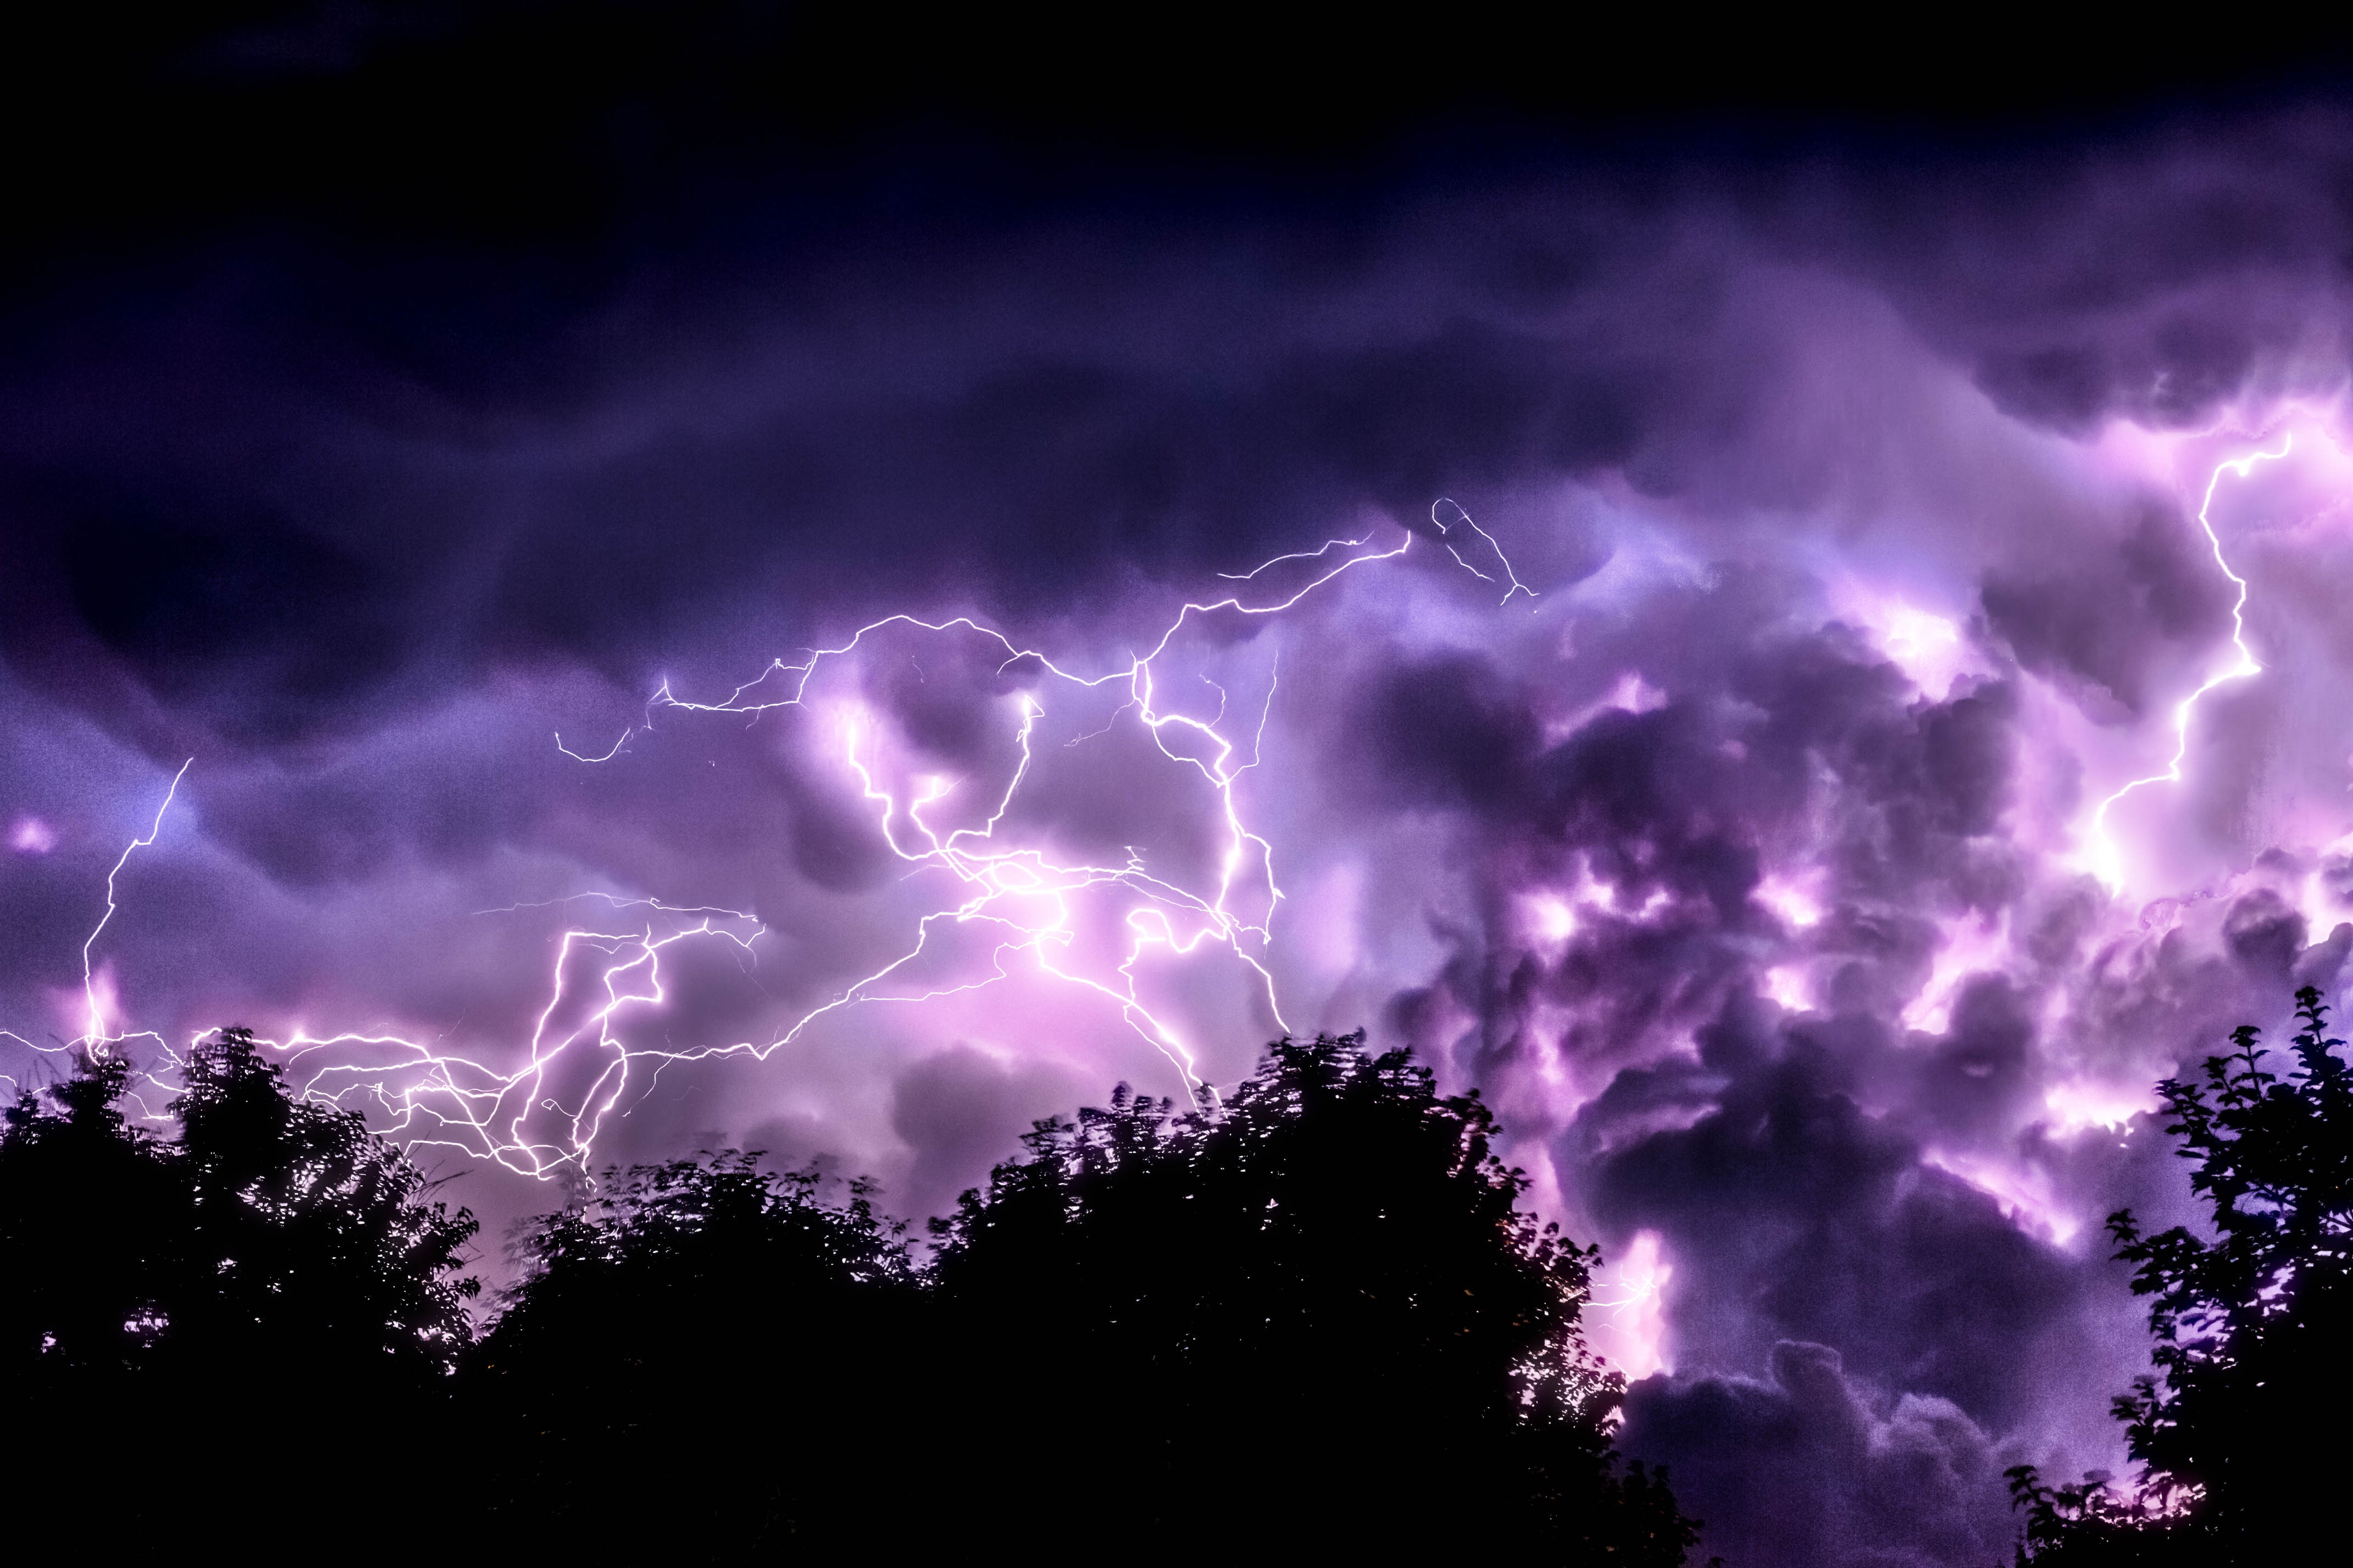 A view of purple lightning and thunder bolt in the sky